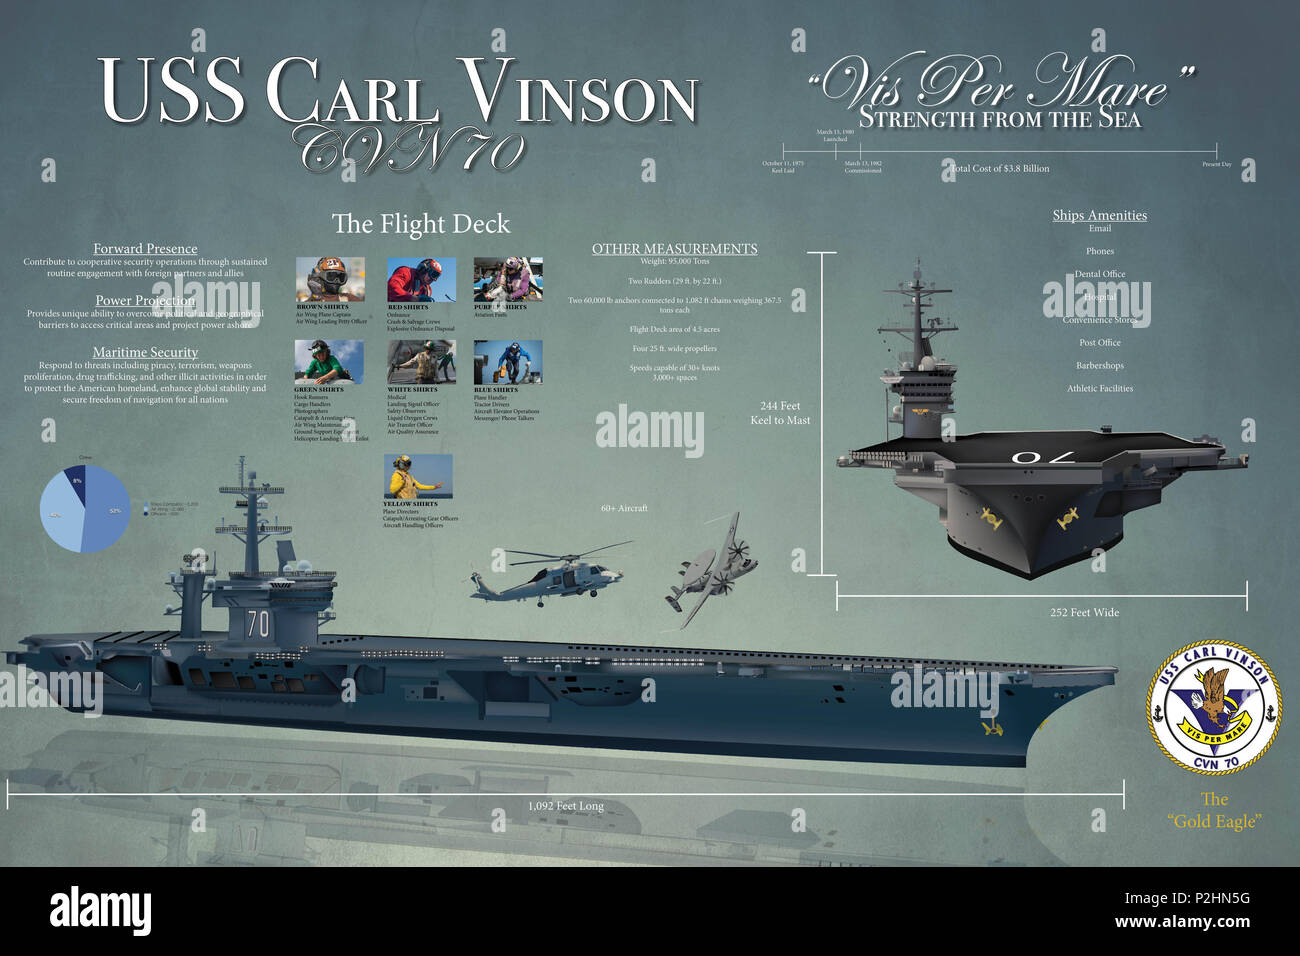 160922-N-LK571-001 SAN DIEGO (Sept. 22, 2016) An infograph describing the capabilities and capacity of the aircraft carrier USS Carl Vinson (CVN 70). (US Navy graphic by MCSN Matthew Granito/Released) - Stock Image